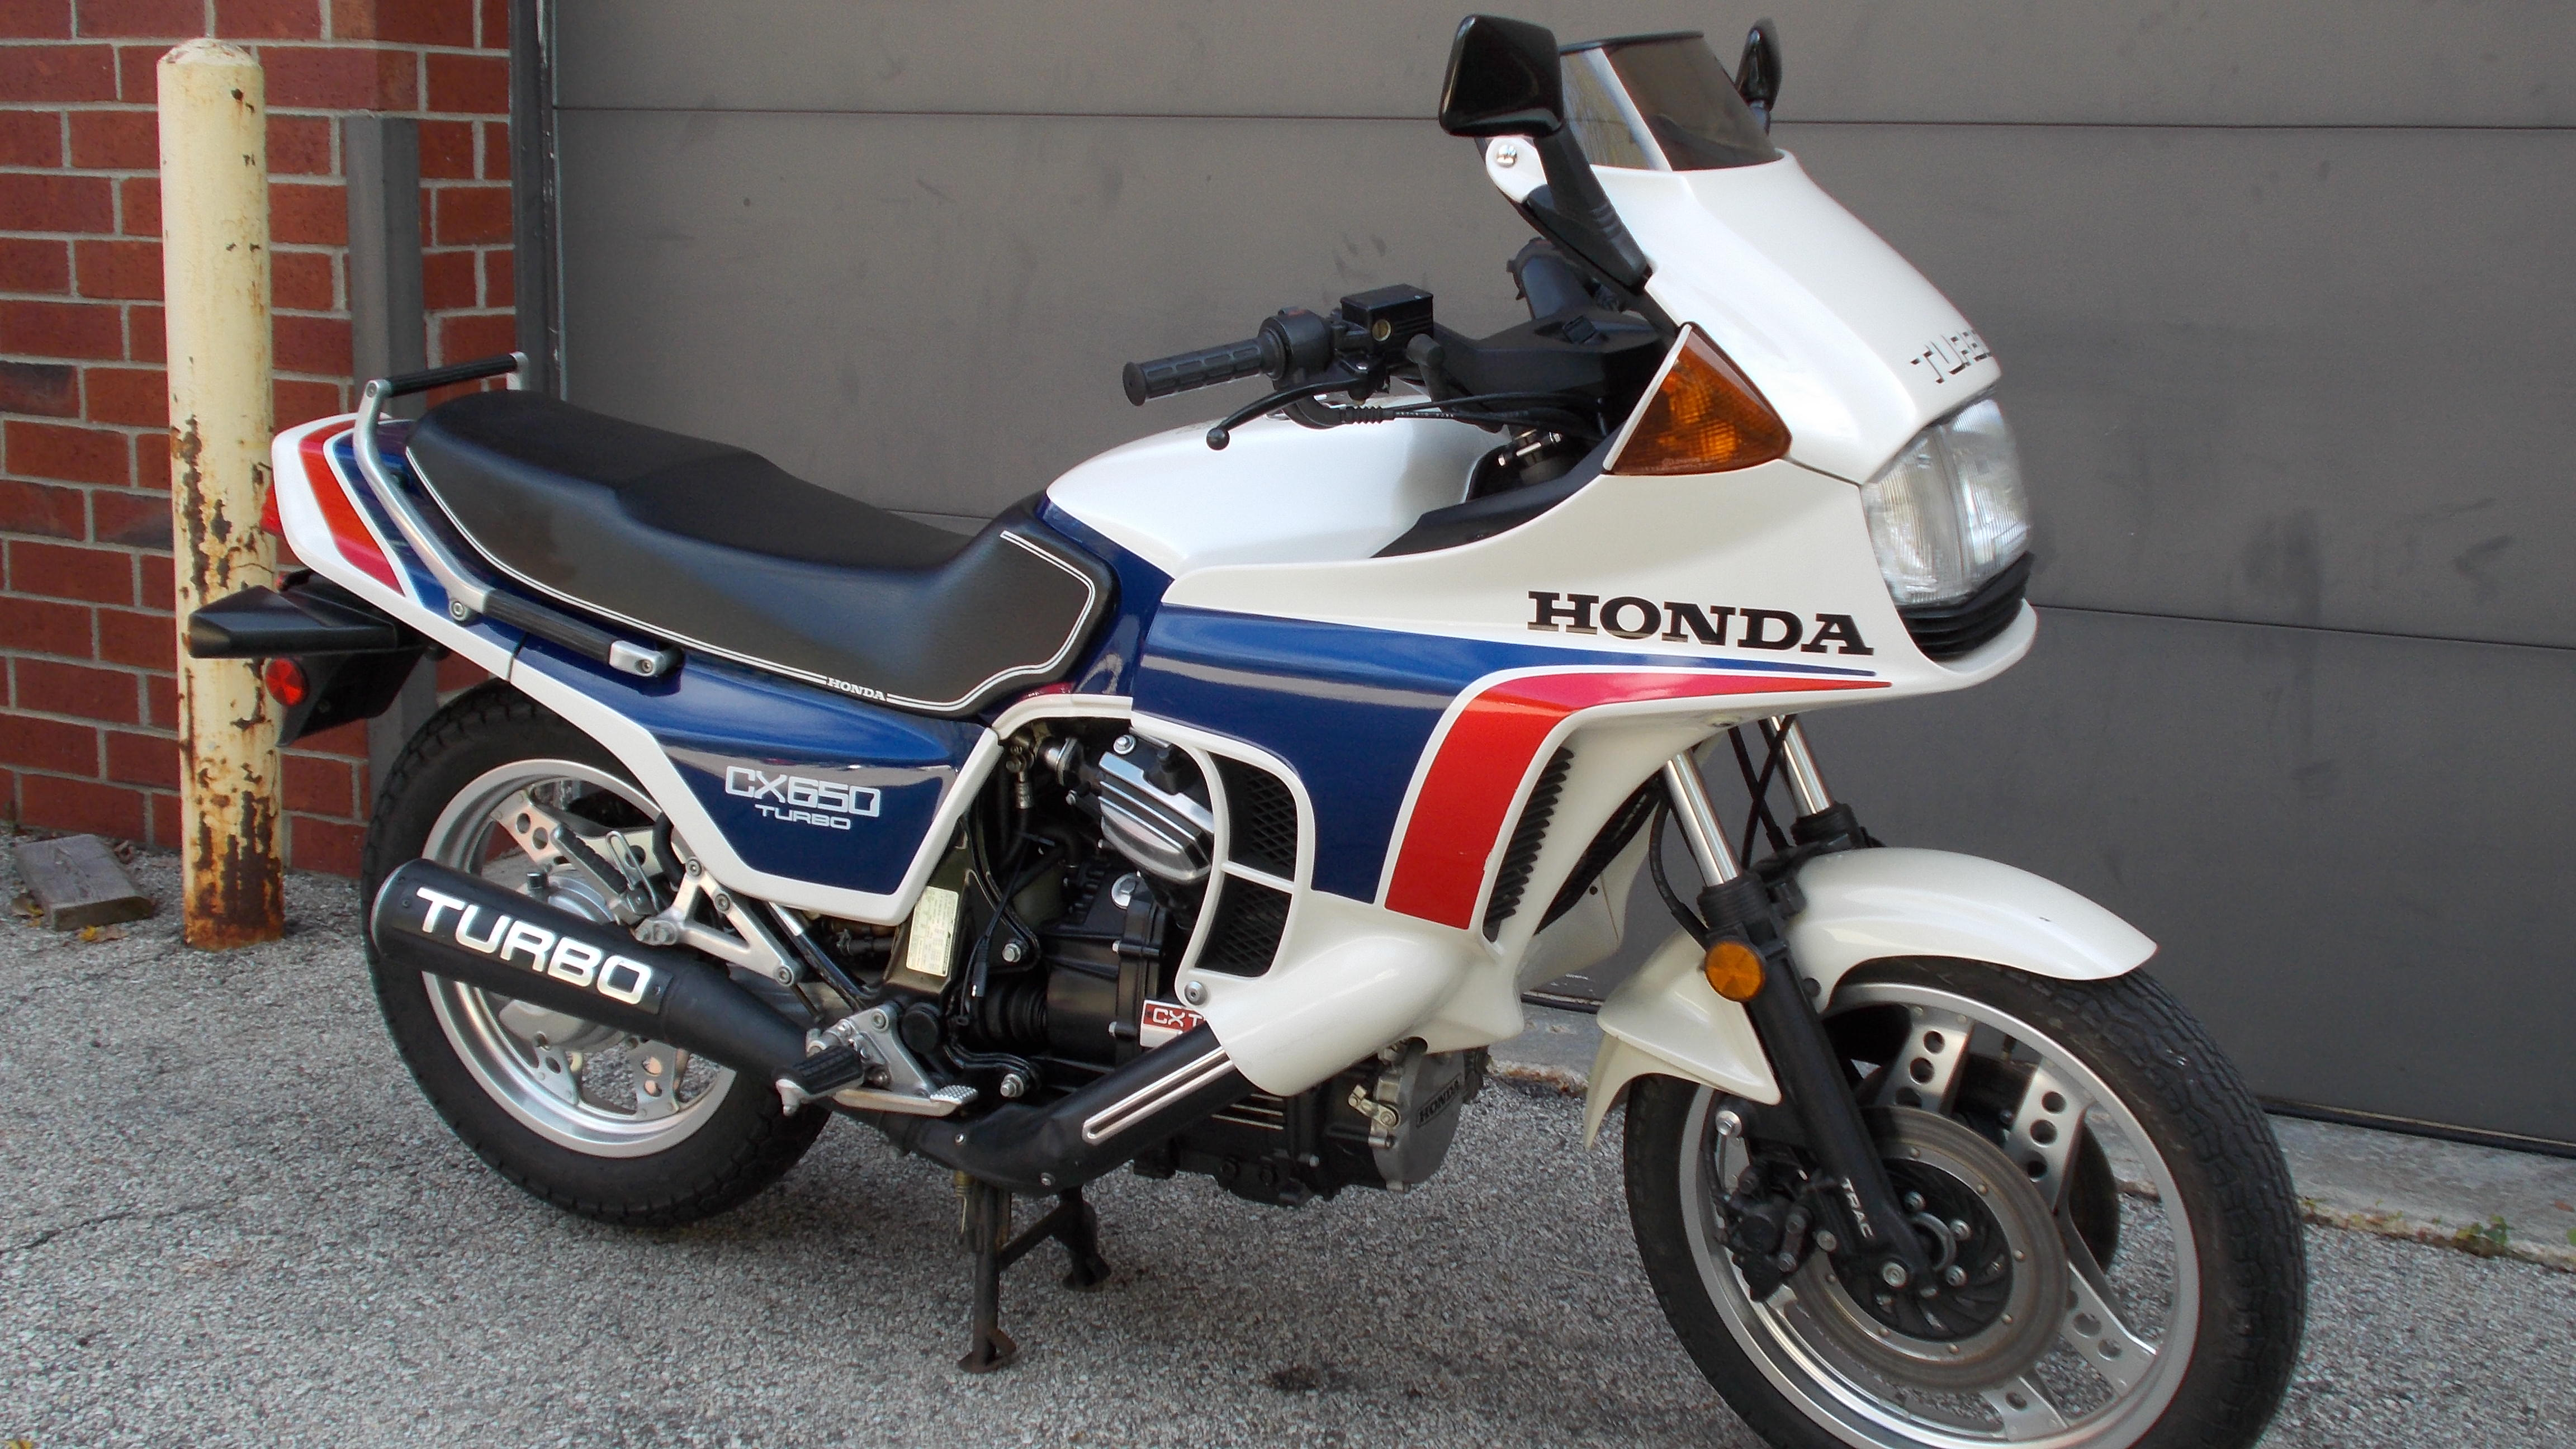 Cx650 archives rare sportbikes for sale when it comes to the rapid pace of motorcycle development nothing could beat the 1980s every manufacturer was scrambling to find the next big thing thecheapjerseys Choice Image